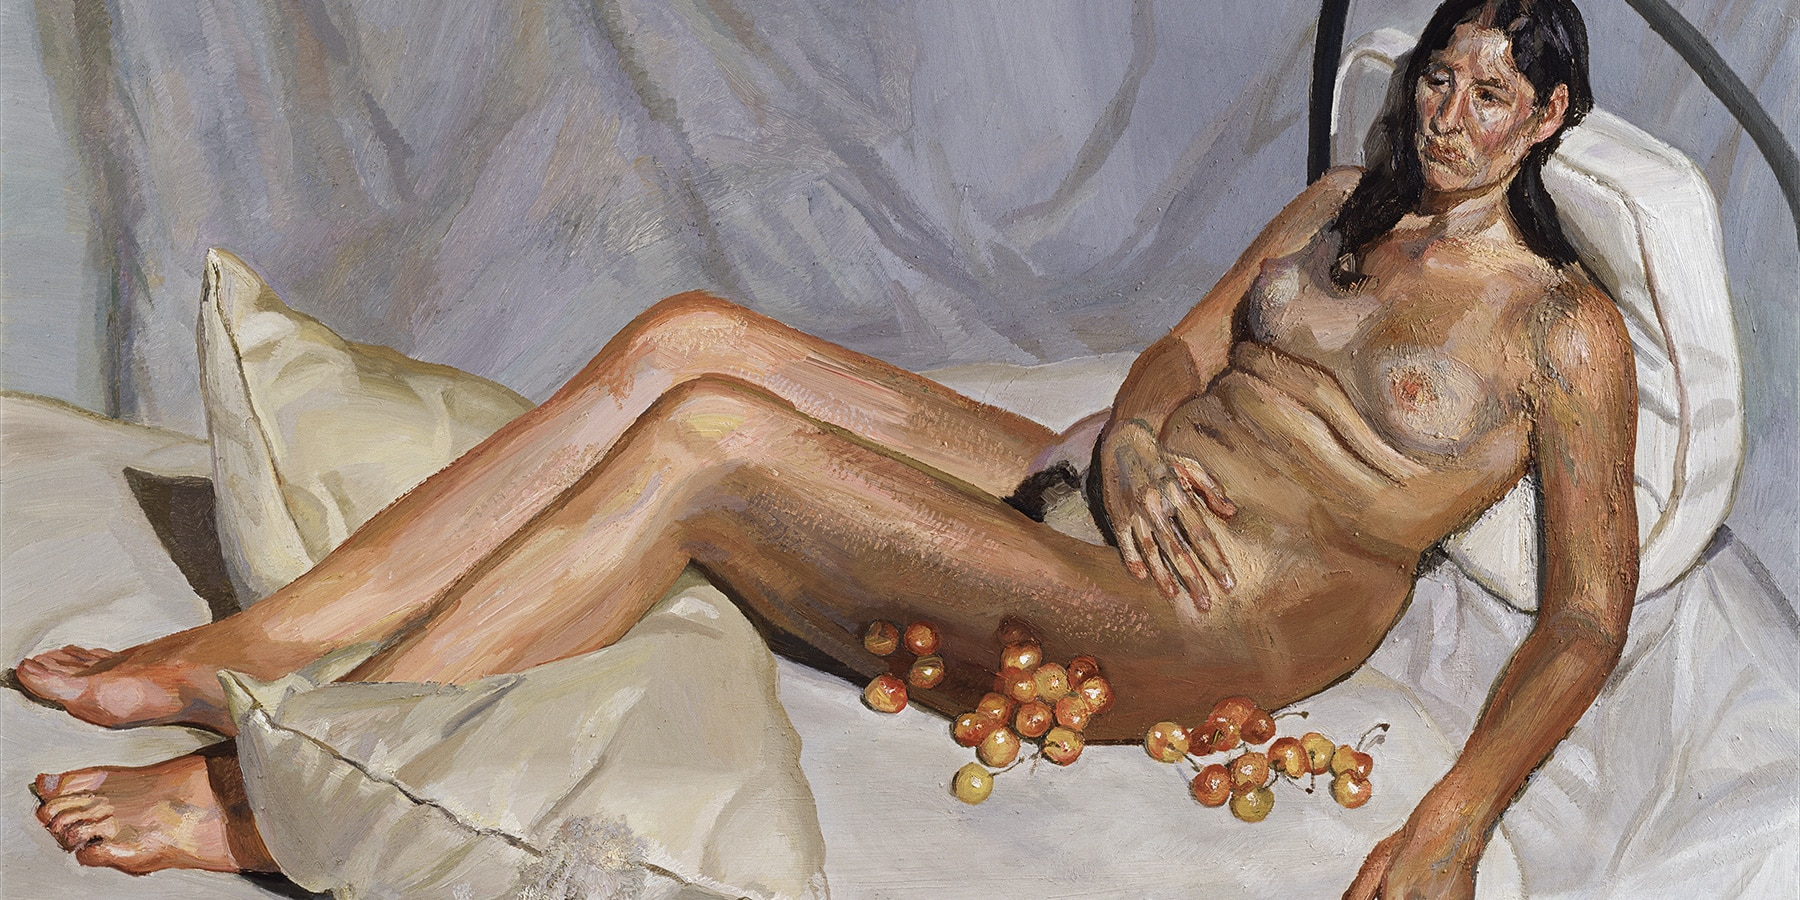 All Nude Image 13 of lucian freud's larger-than-life nudes are on view